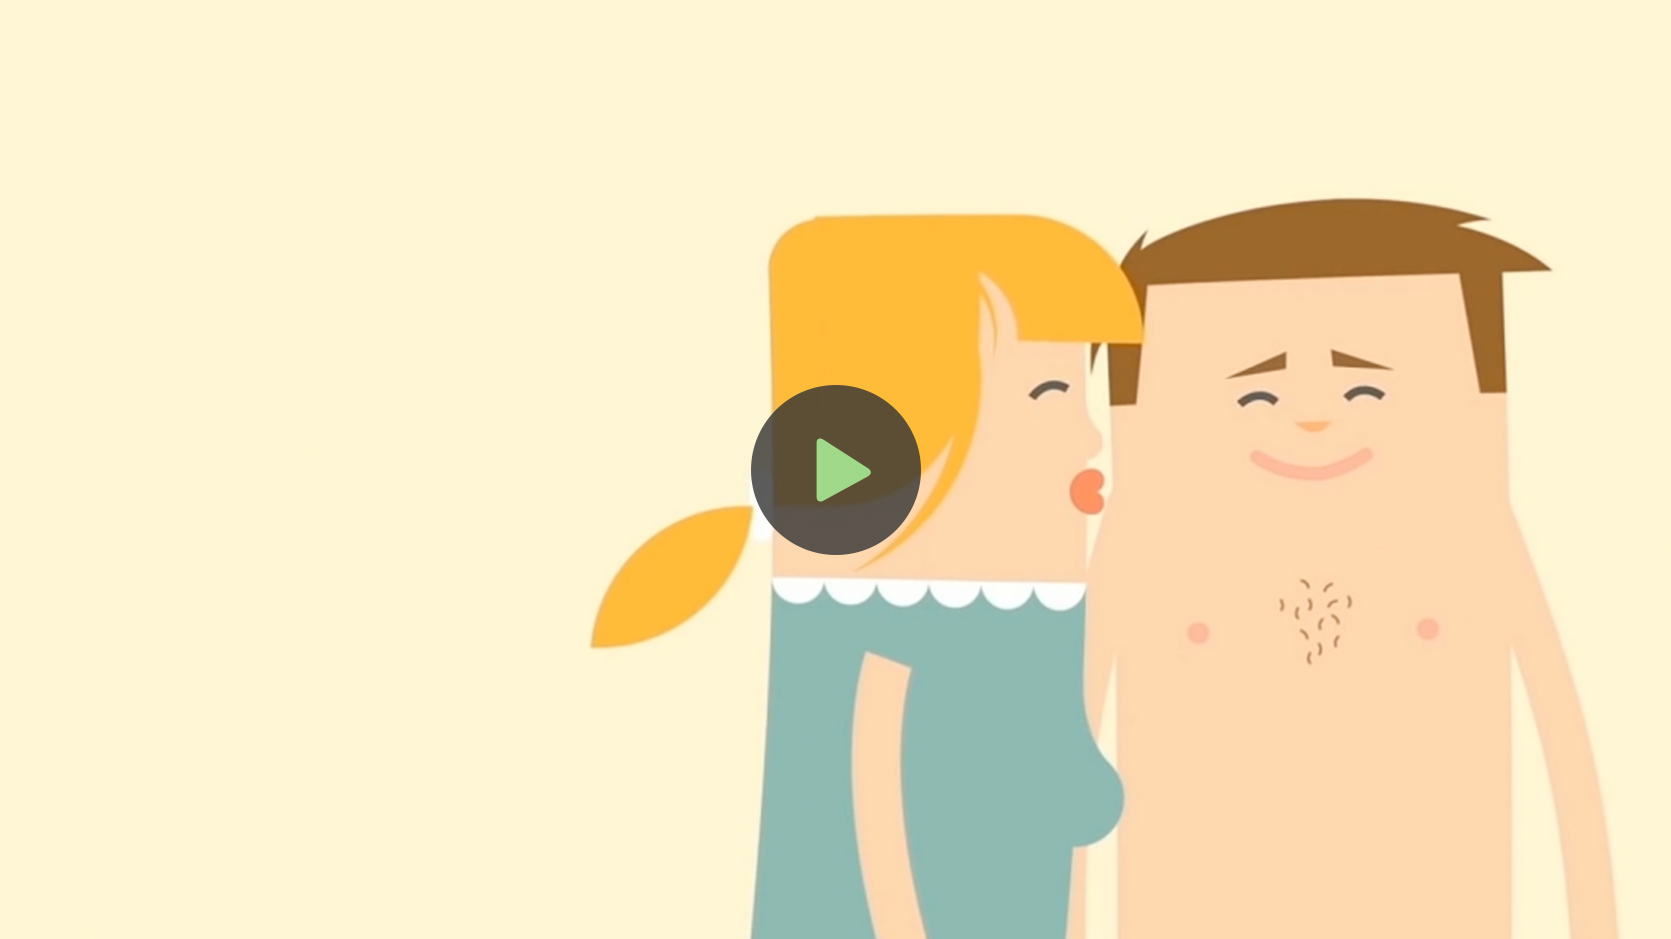 animated image of a man and a woman